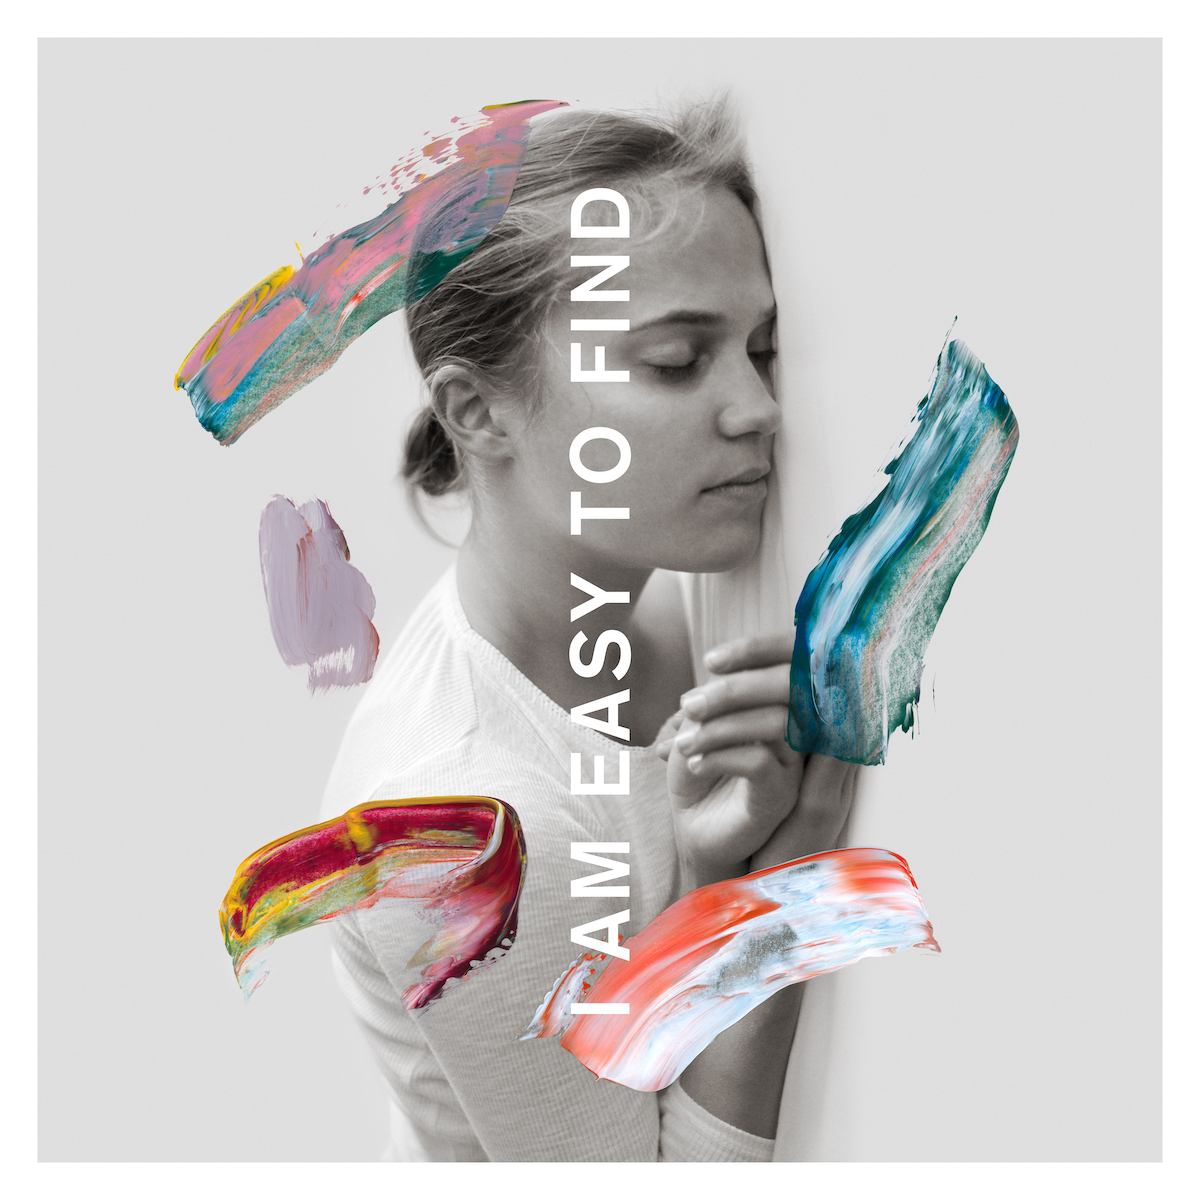 """The National, have announced, their LP I Am Easy To Find will arrive on 5/17. The bad has shared the lead-single """"You Had Your Soul With You,"""""""